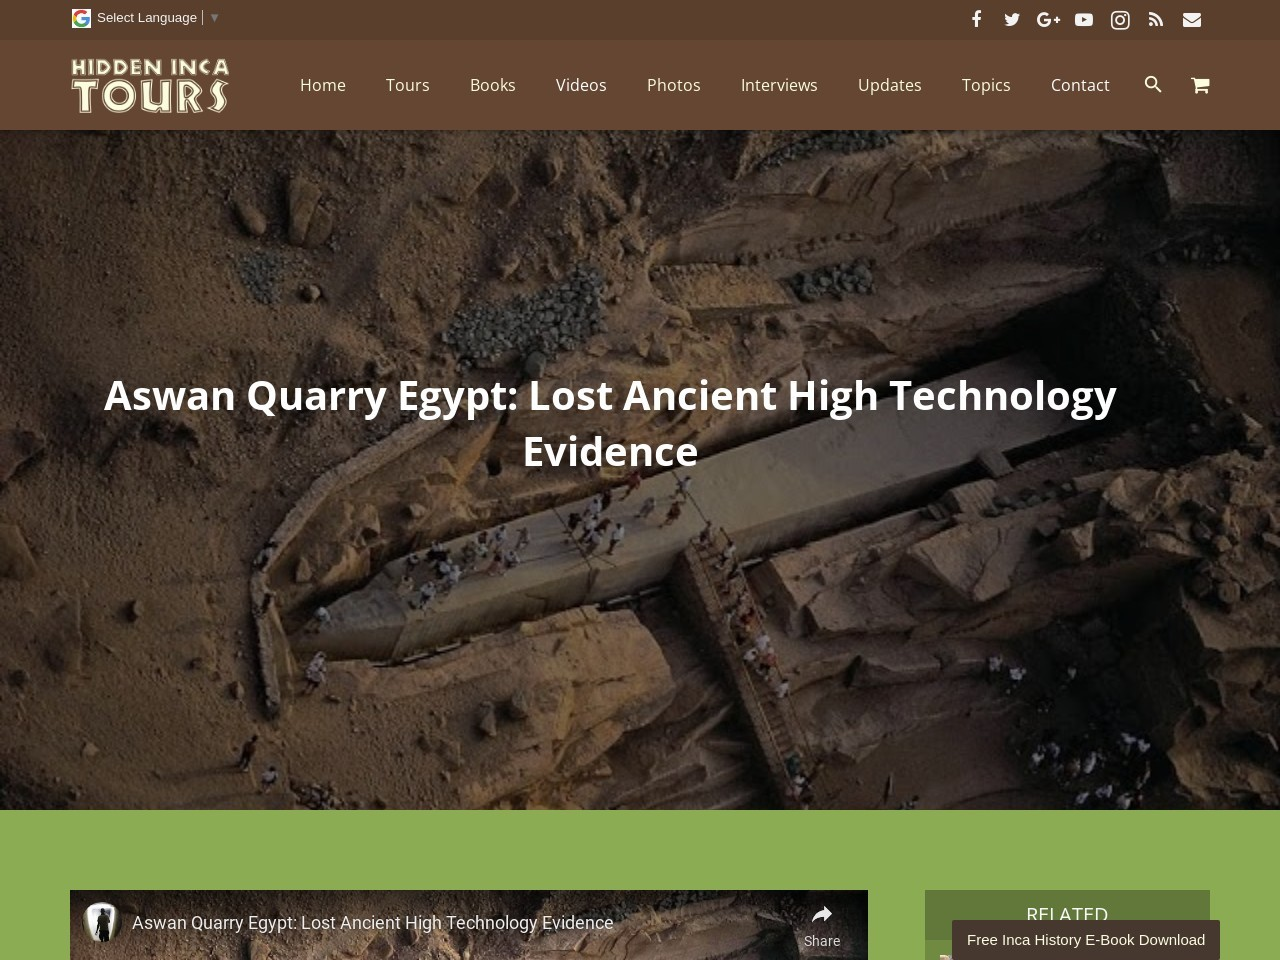 Aswan Quarry Egypt: Lost Ancient High Technology Evidence